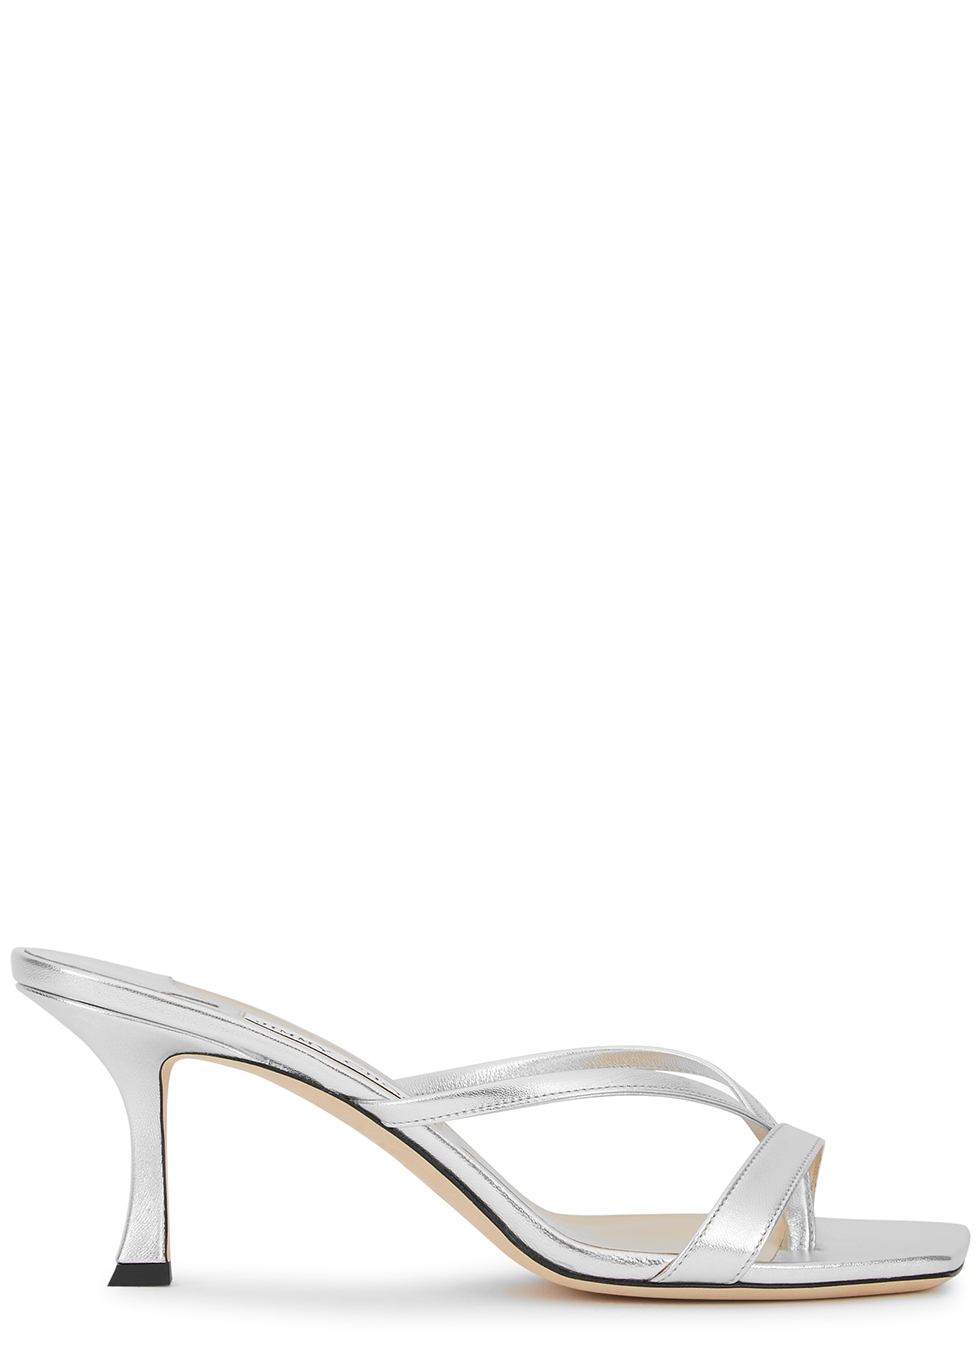 Maelie 70 silver leather mules